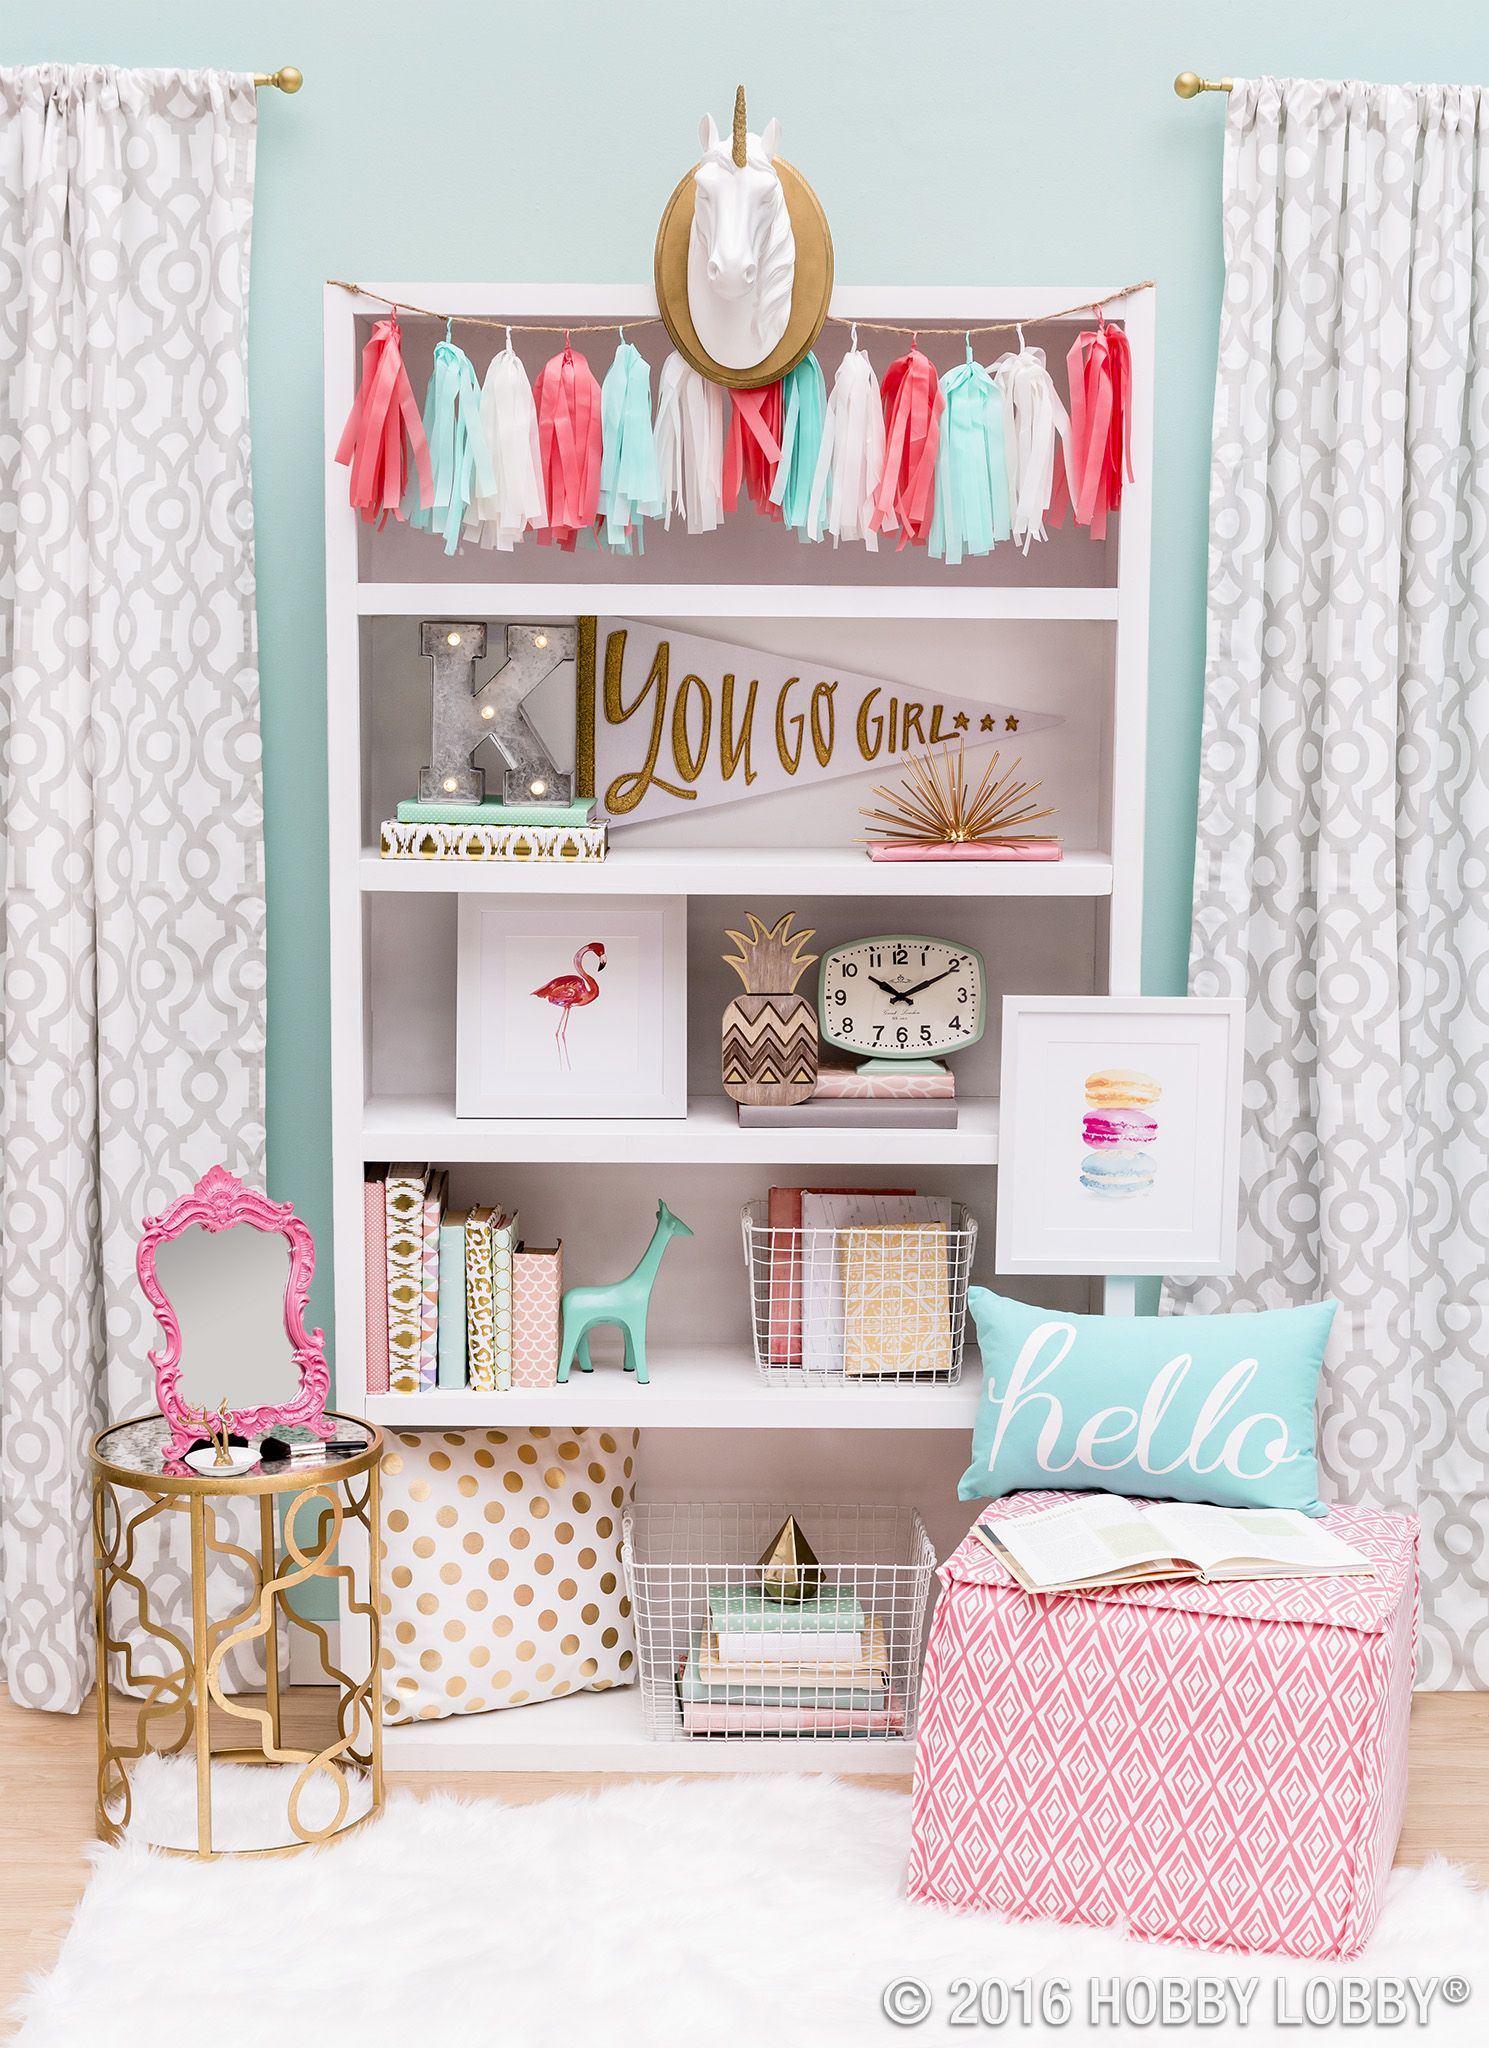 Pink Accent Pieces Decorative Accessories Home Decor Frames Hobby Lobby Girls Room Decor Girl Room Room